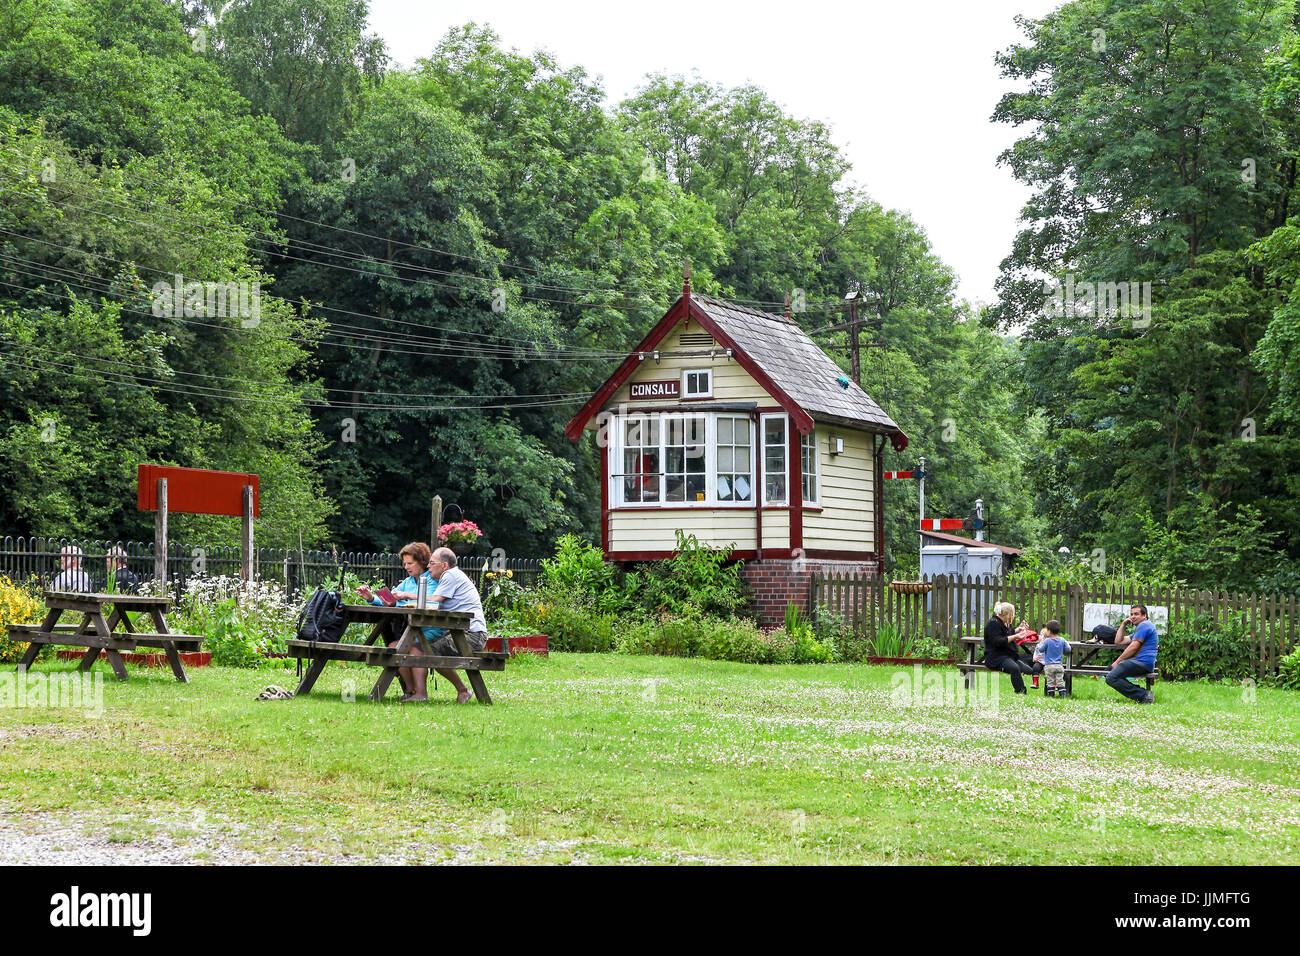 The Churnet Valley Railway at Consall is a preserved standard gauge heritage railway to the east of Stoke-on-Trent - Stock Image